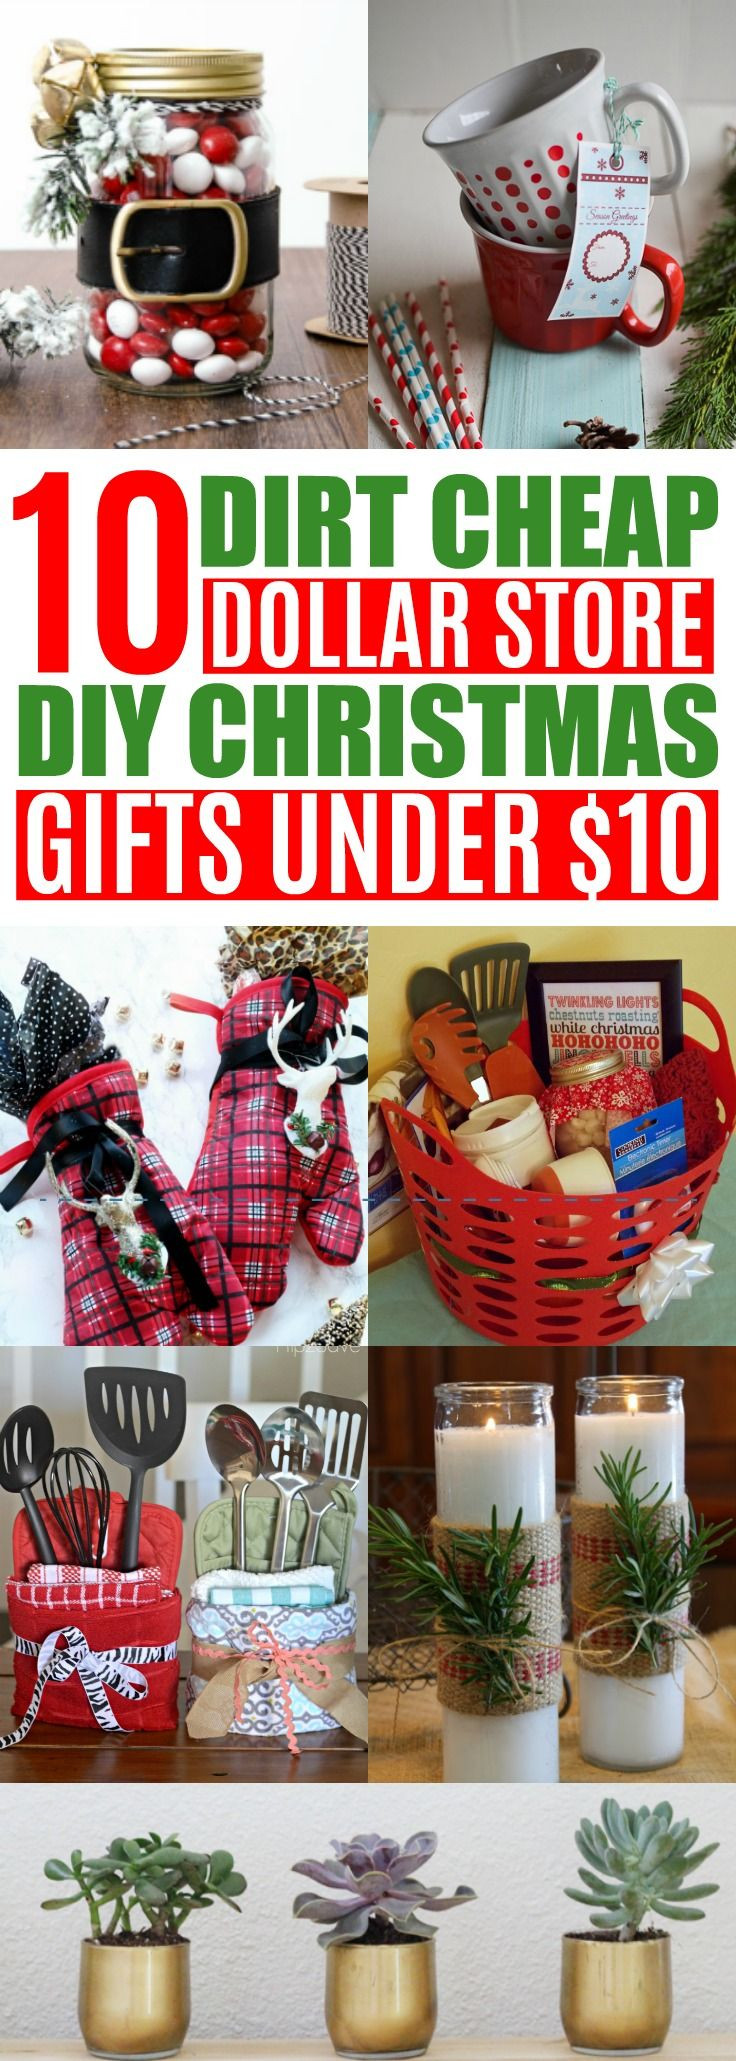 Best ideas about Holiday Gift Ideas For Friends . Save or Pin Best 25 Friends family ideas on Pinterest Now.